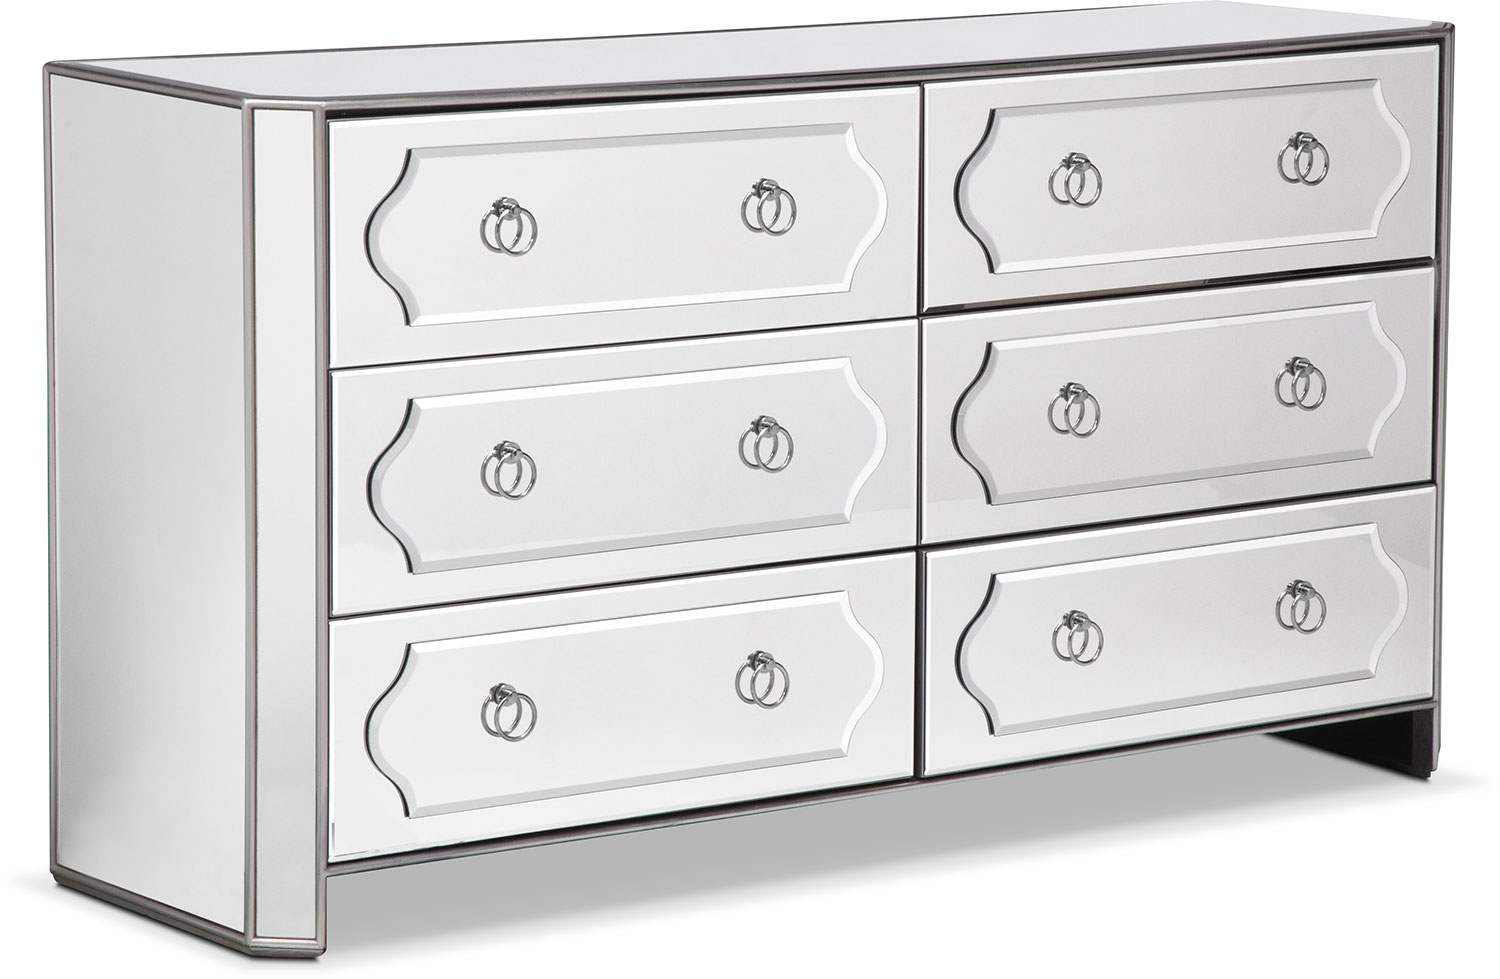 Bedroom Furniture - Harlow Dresser